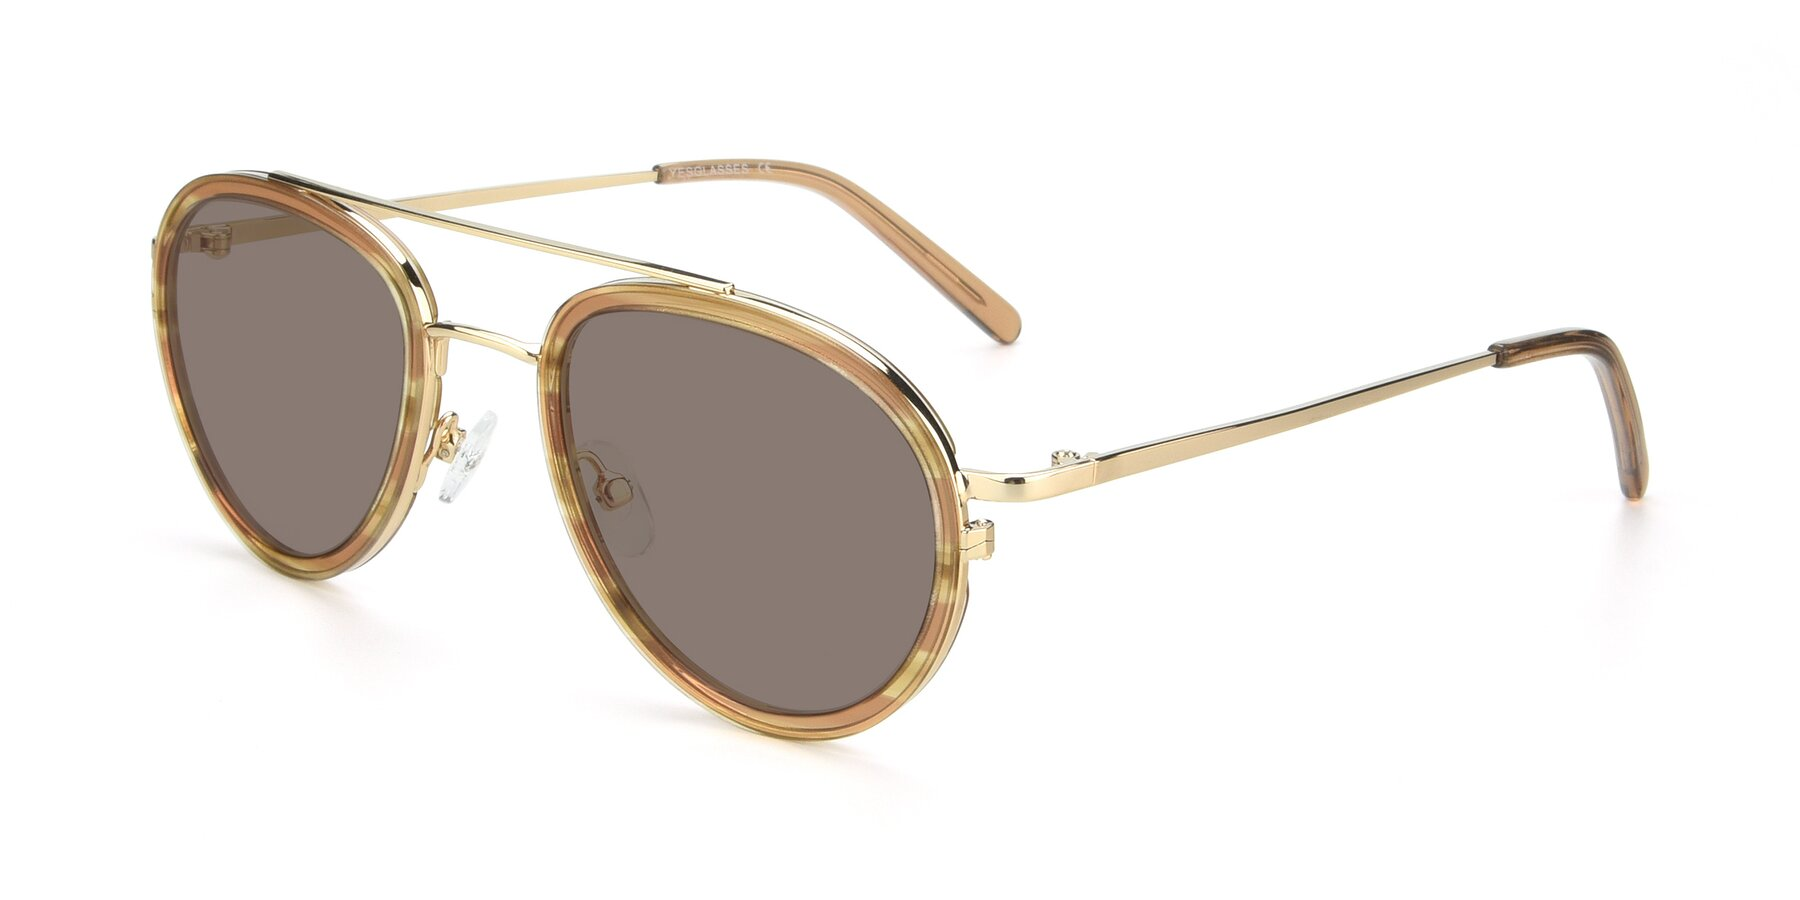 Angle of 9554 in Gold-Caramel with Medium Brown Tinted Lenses